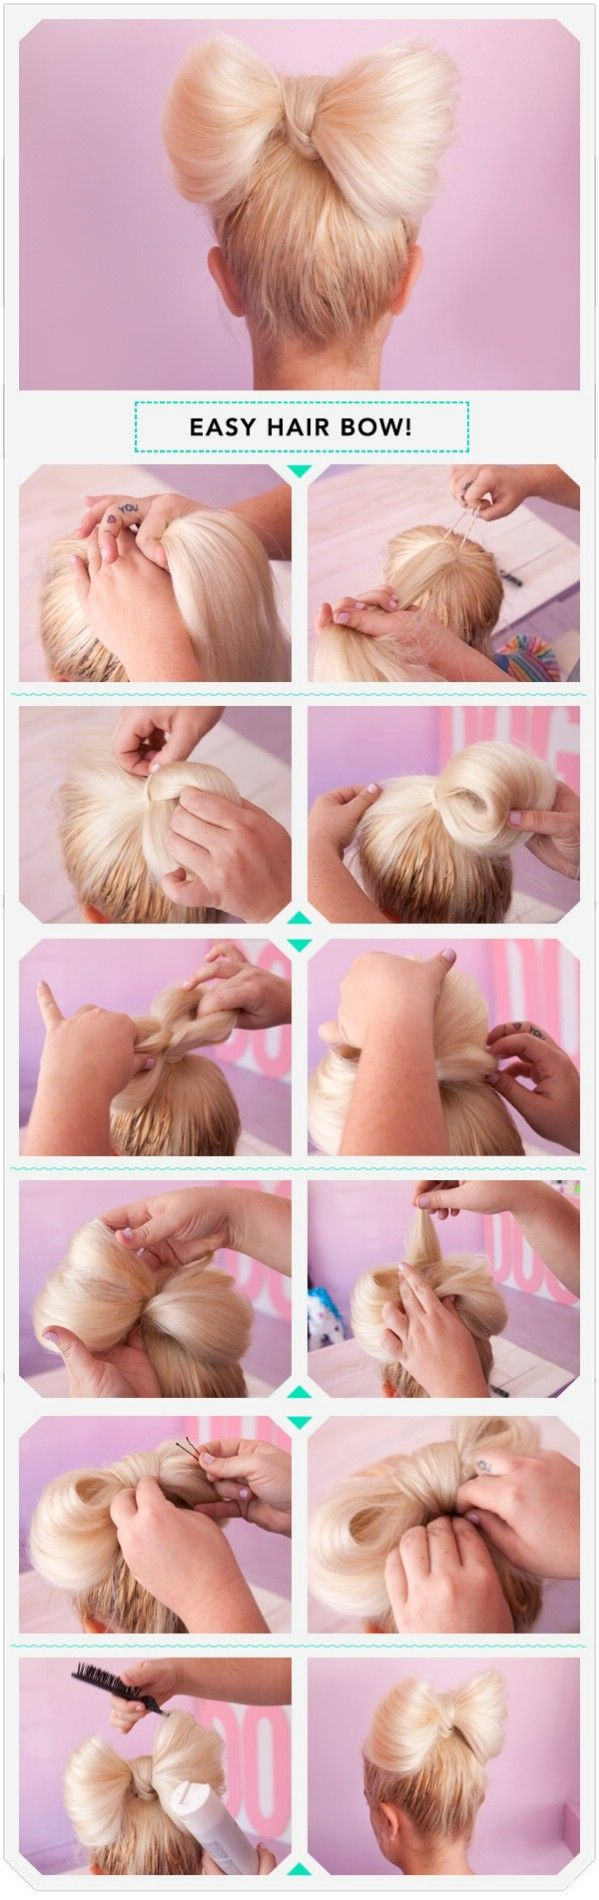 hair+instructions | ... hair spray to help set it you have a hair bow made from your own hair